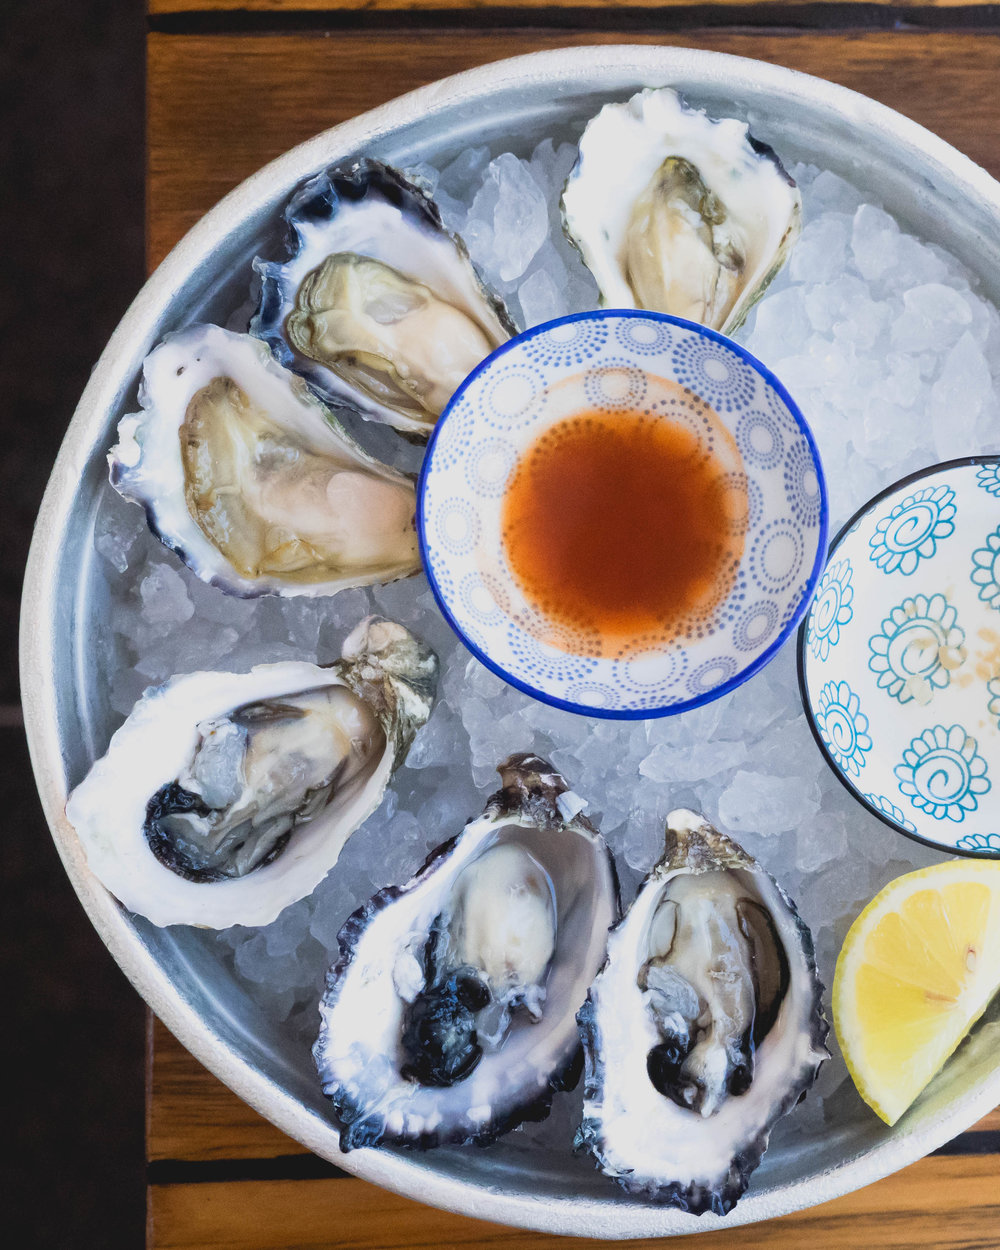 pacific and sydney rock oysters with hot sauce, lemon, mignonette .